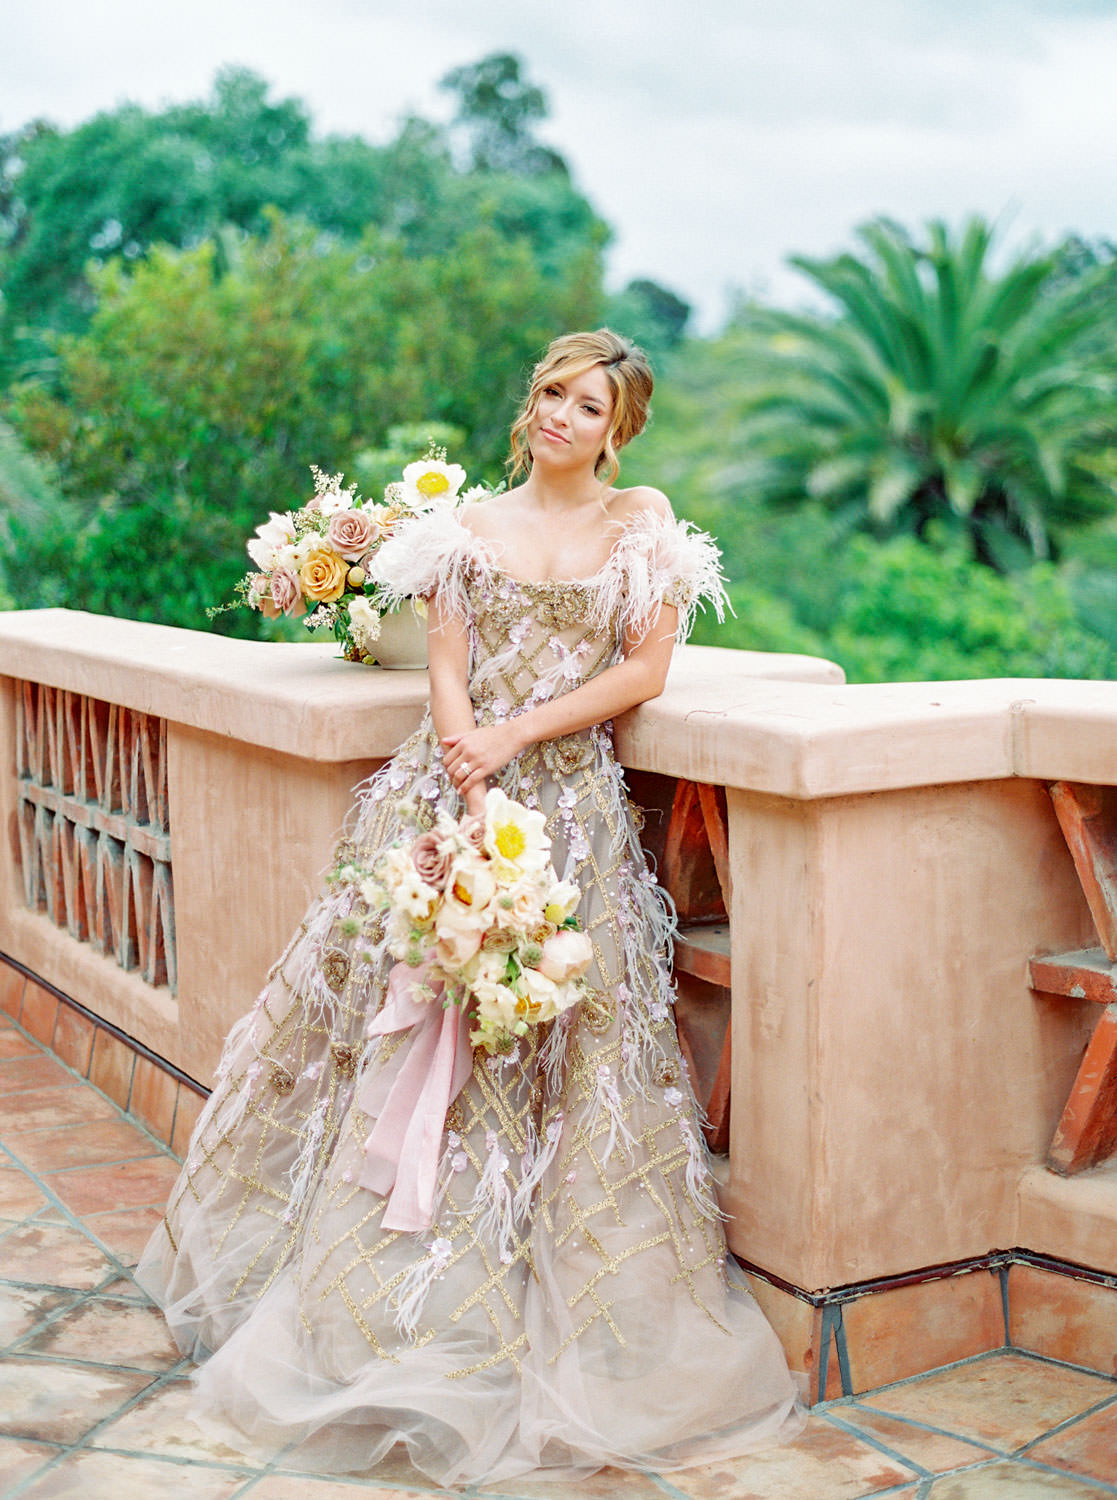 Bridal bouquet with mauve, ivory, yellow roses and greenery with trailing blush ribbons. Marchesa couture gown with blush feathers, gold lines, and floral embellishments. Honey and Beekeeper Inspired Wedding at Rancho Valencia on film by Cavin Elizabeth Photography